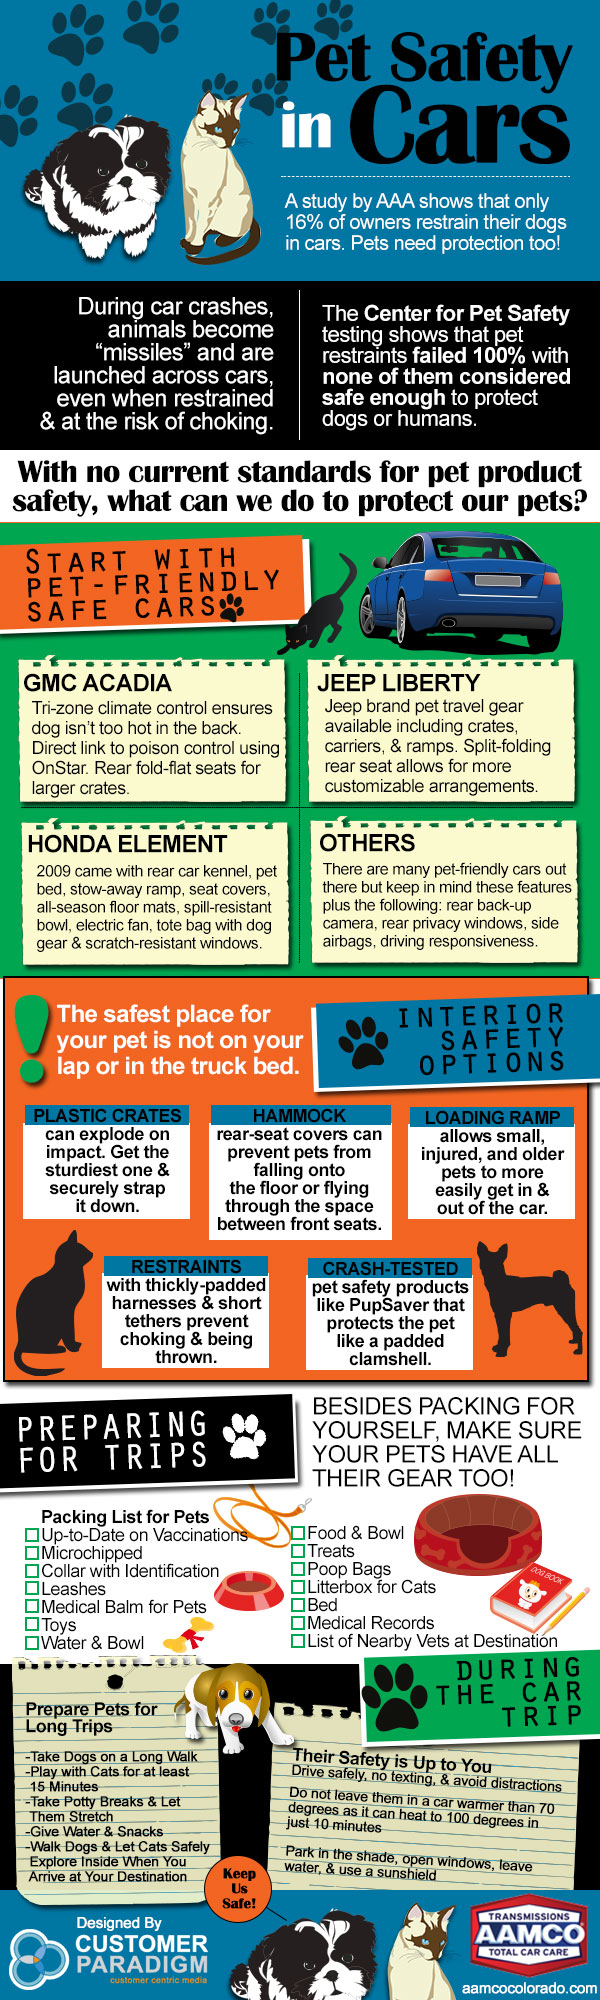 Pet Safety In Cars Infographic - AAMCO Colorado